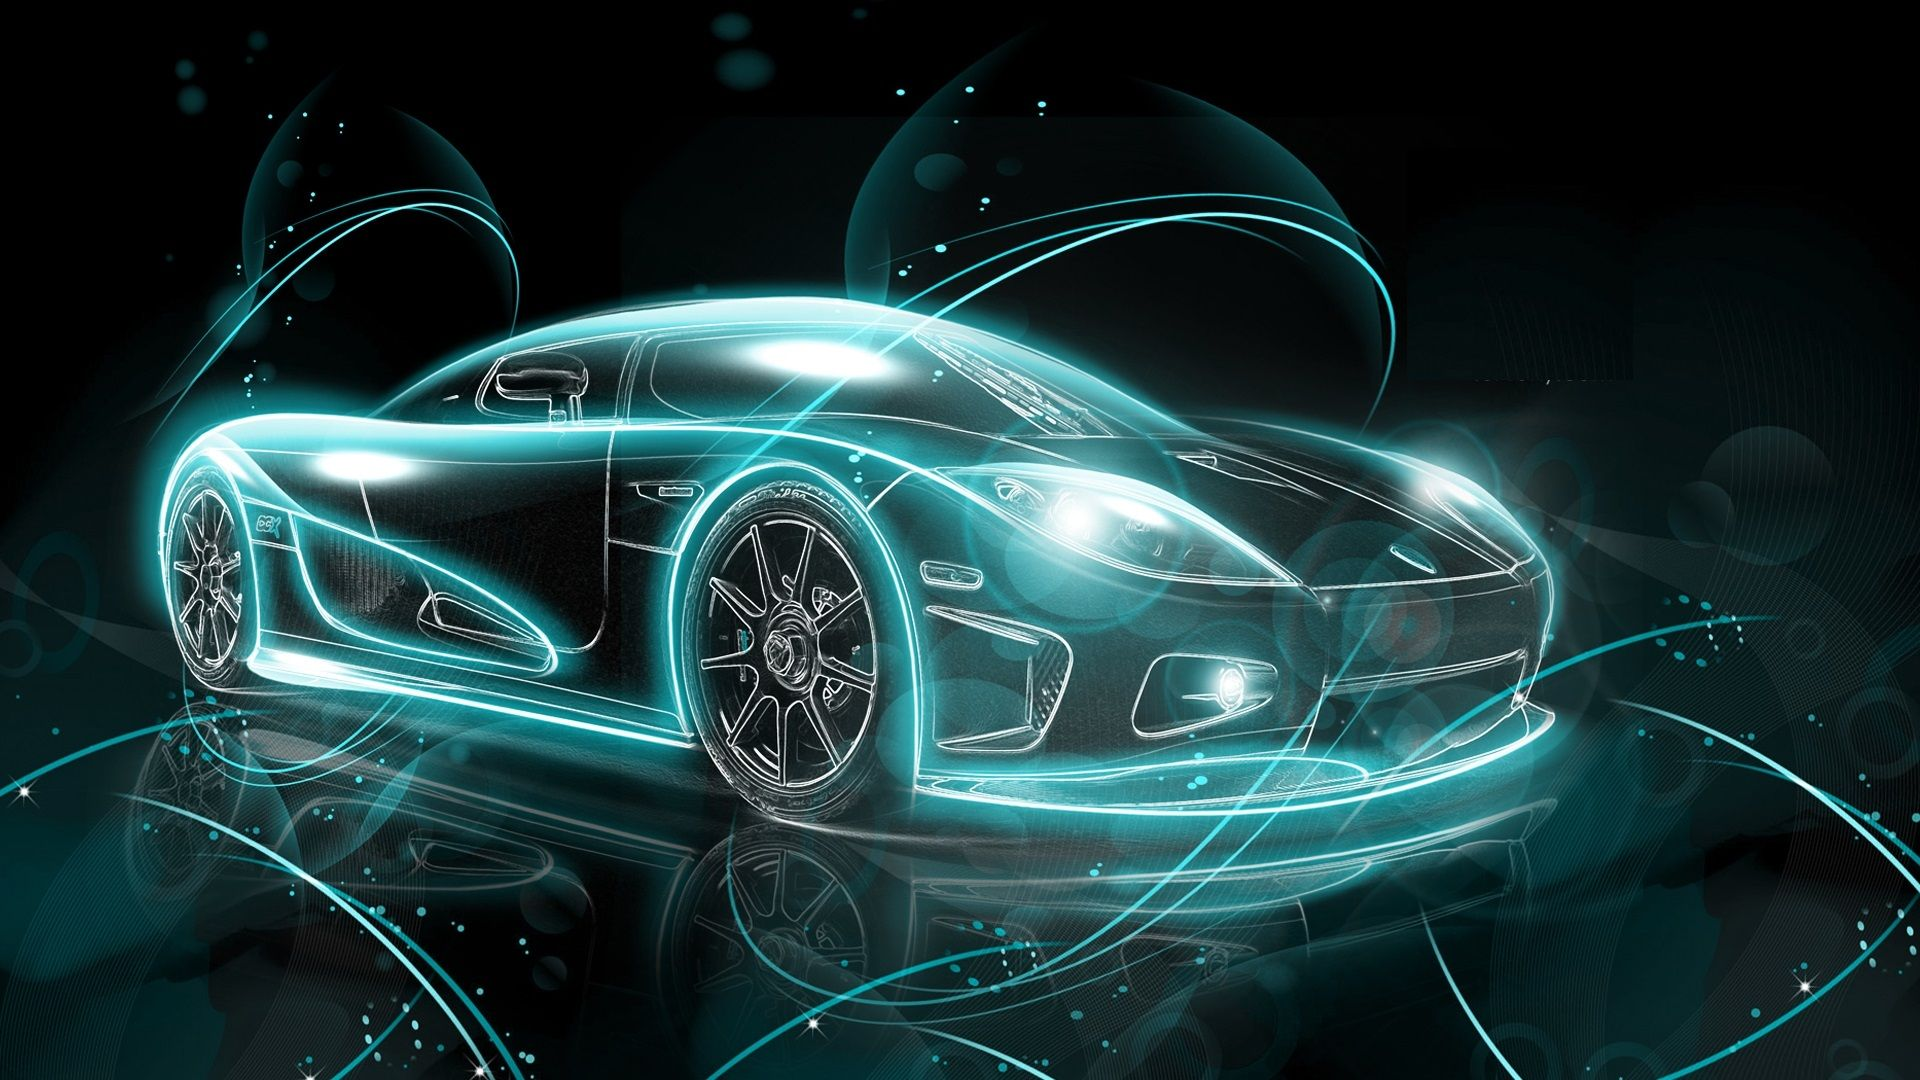 Abstract Sports Car Hd Wallpaper Car Wallpapers Walle Disenos